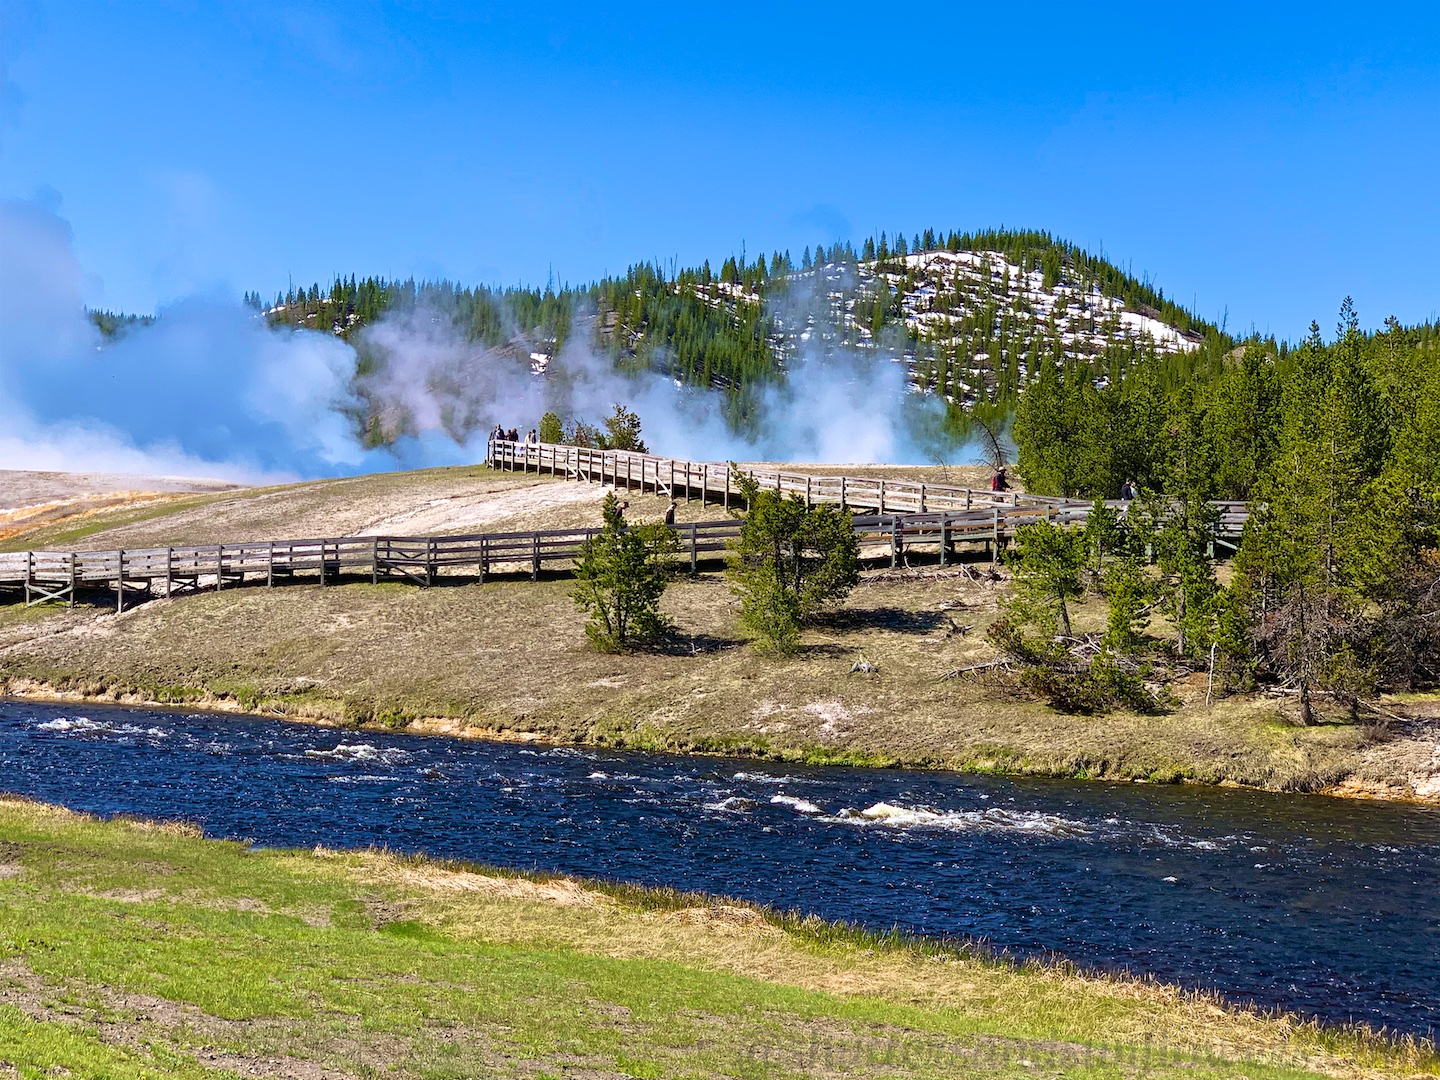 The steaming Midway Geyser Basin, by The Firehole River at Yellowstone National Park